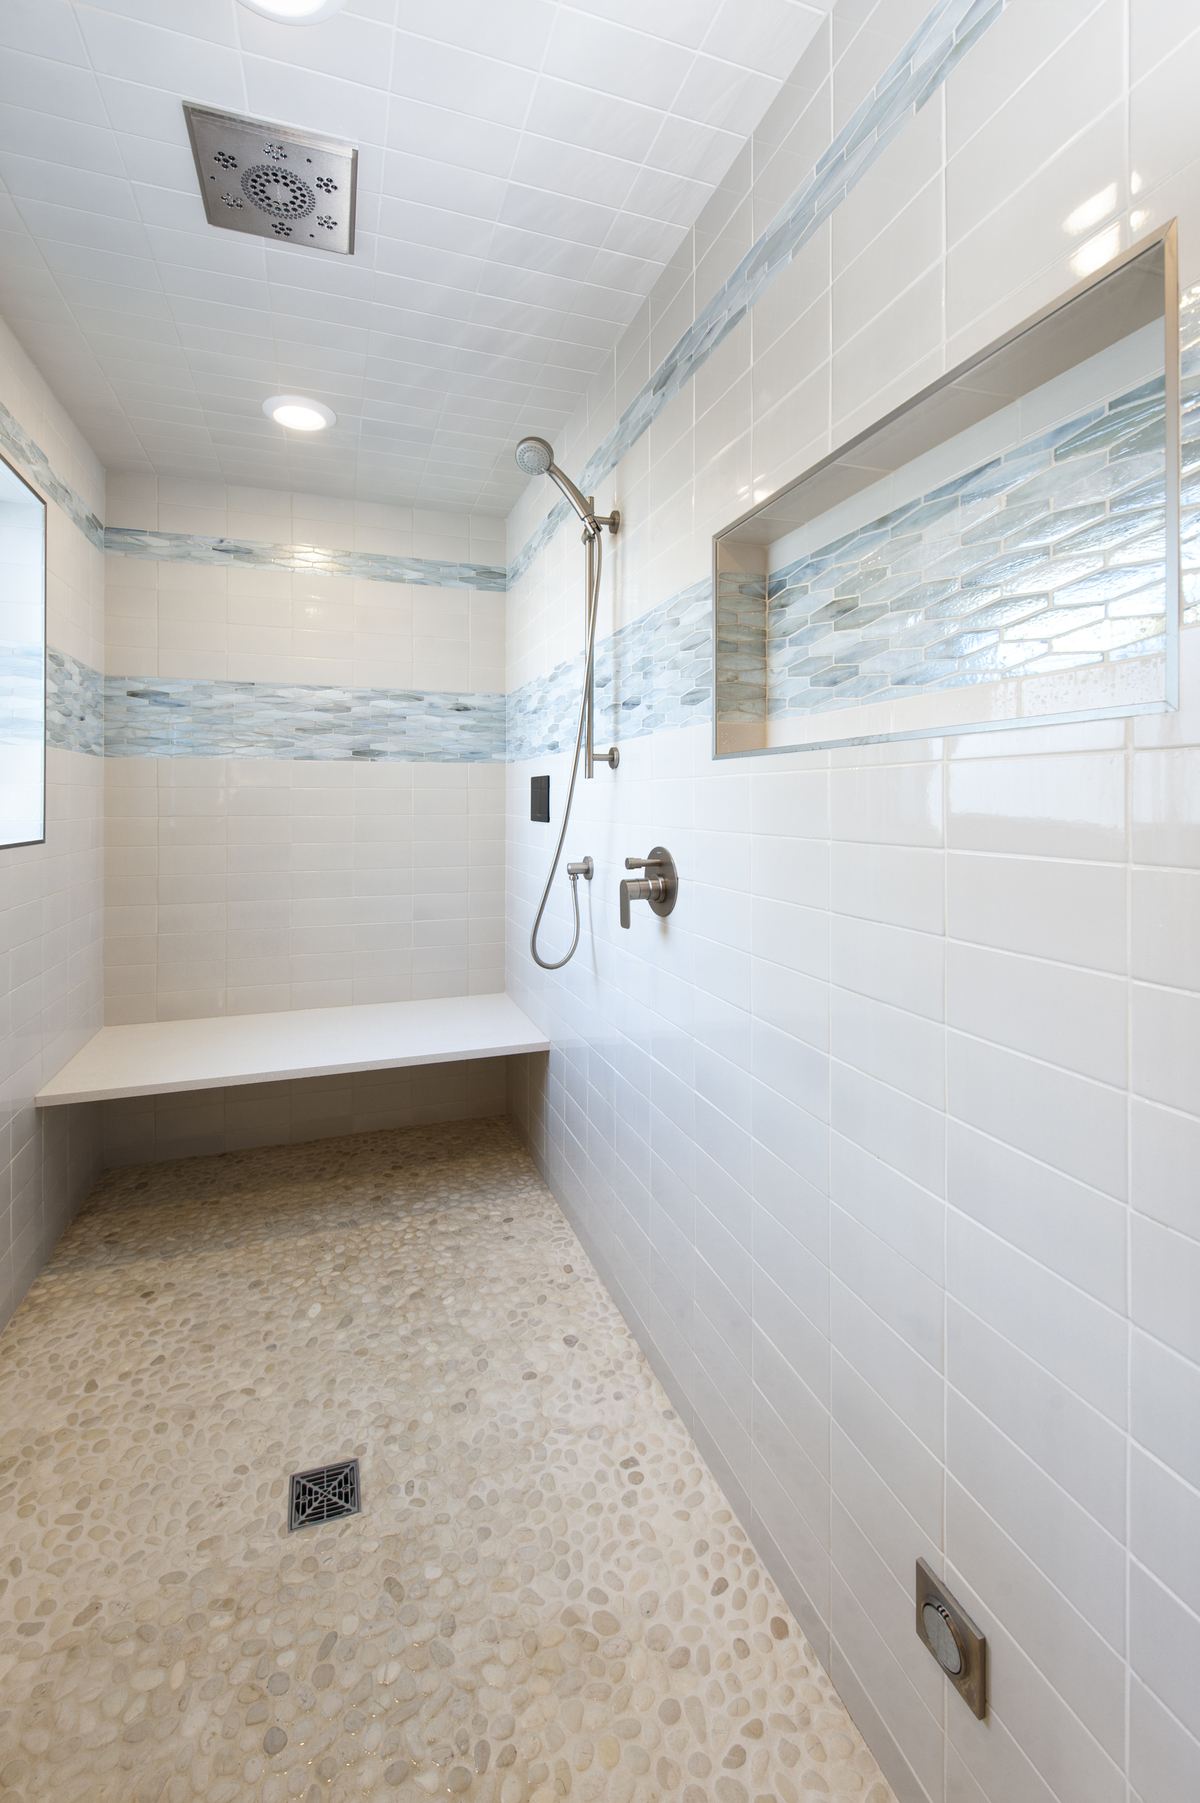 walk-in tiled steam shower, pebble tile floor, built-in ledge